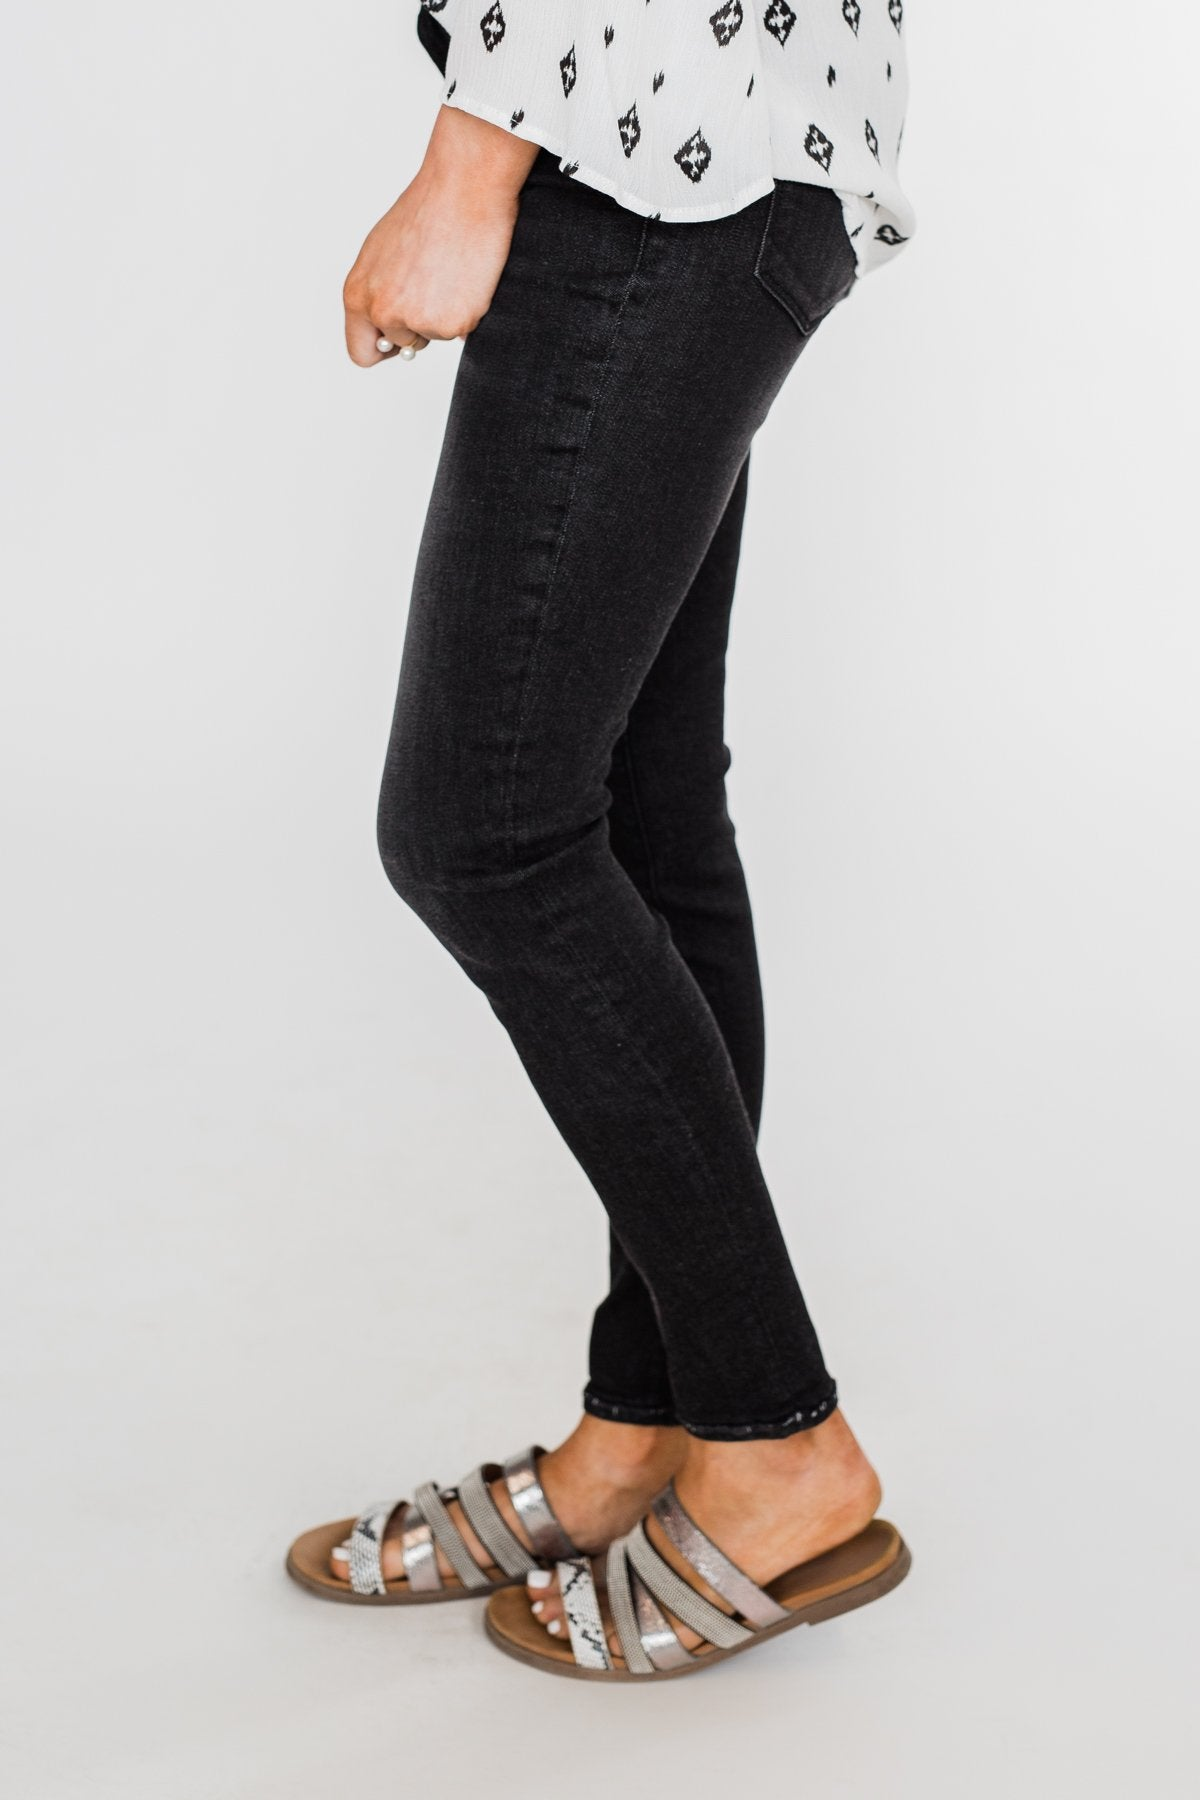 Sneak Peek Vintage Black Jeans- Josie Wash